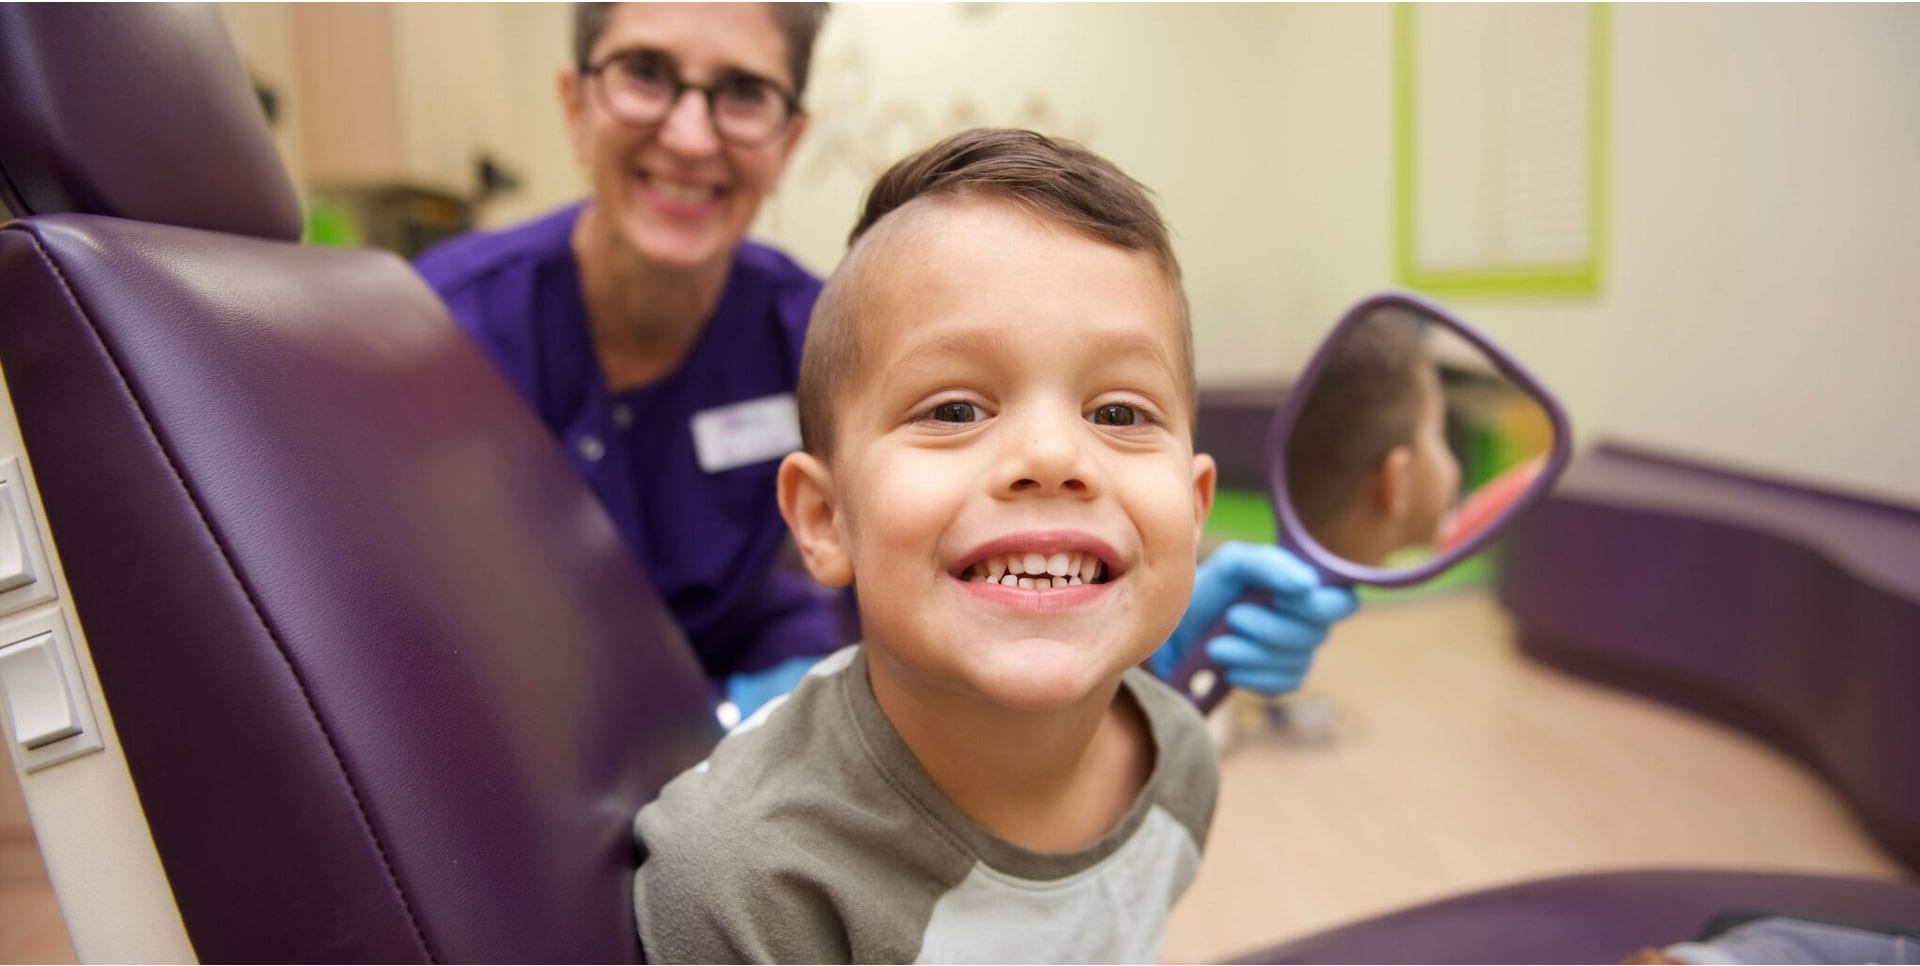 Dr. Laura Adelman and one of her patients. Children's dentist near me.